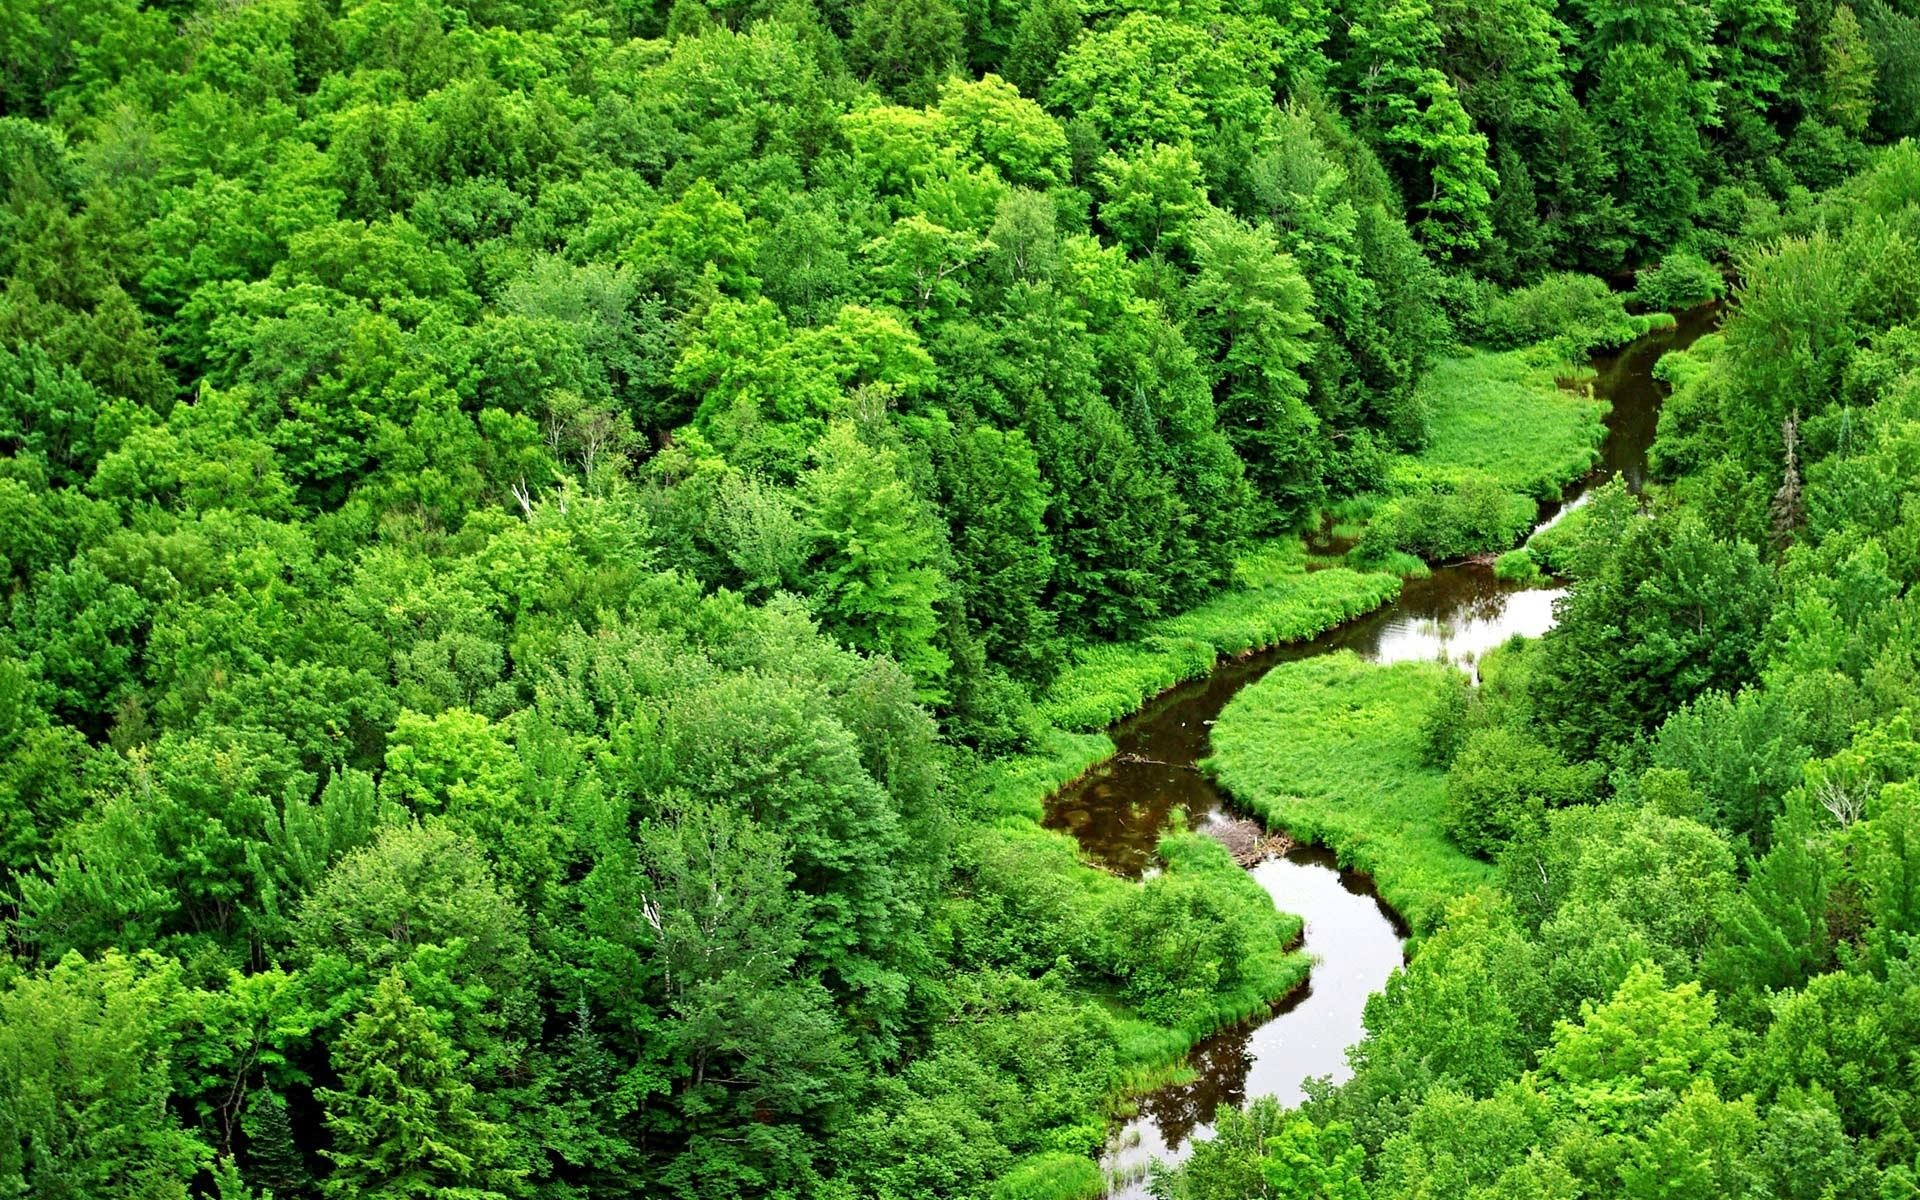 Wallpapers Backgrounds – forest green scenery wallpapers landscape stream  river awesome